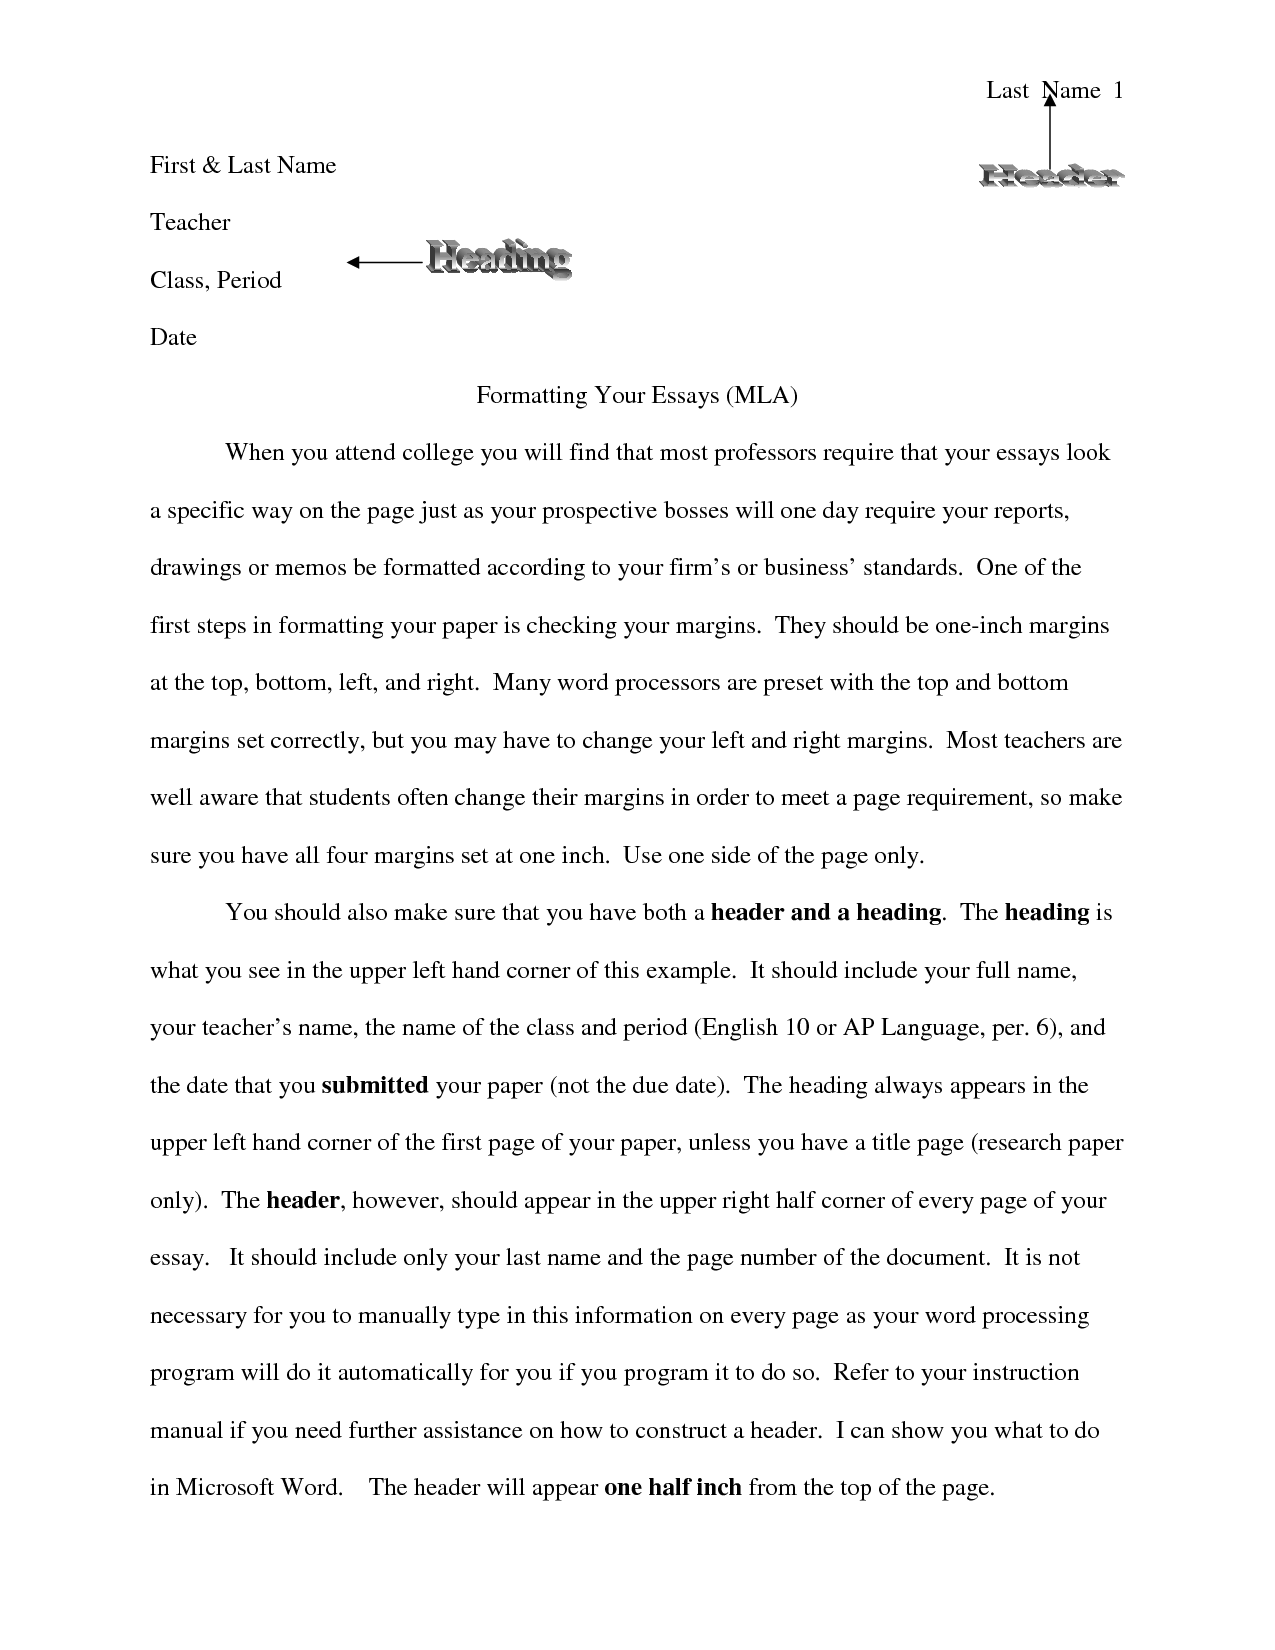 003 Nnftftofsn Essay Example College Incredible Heading Admissions Format Application Papers Full